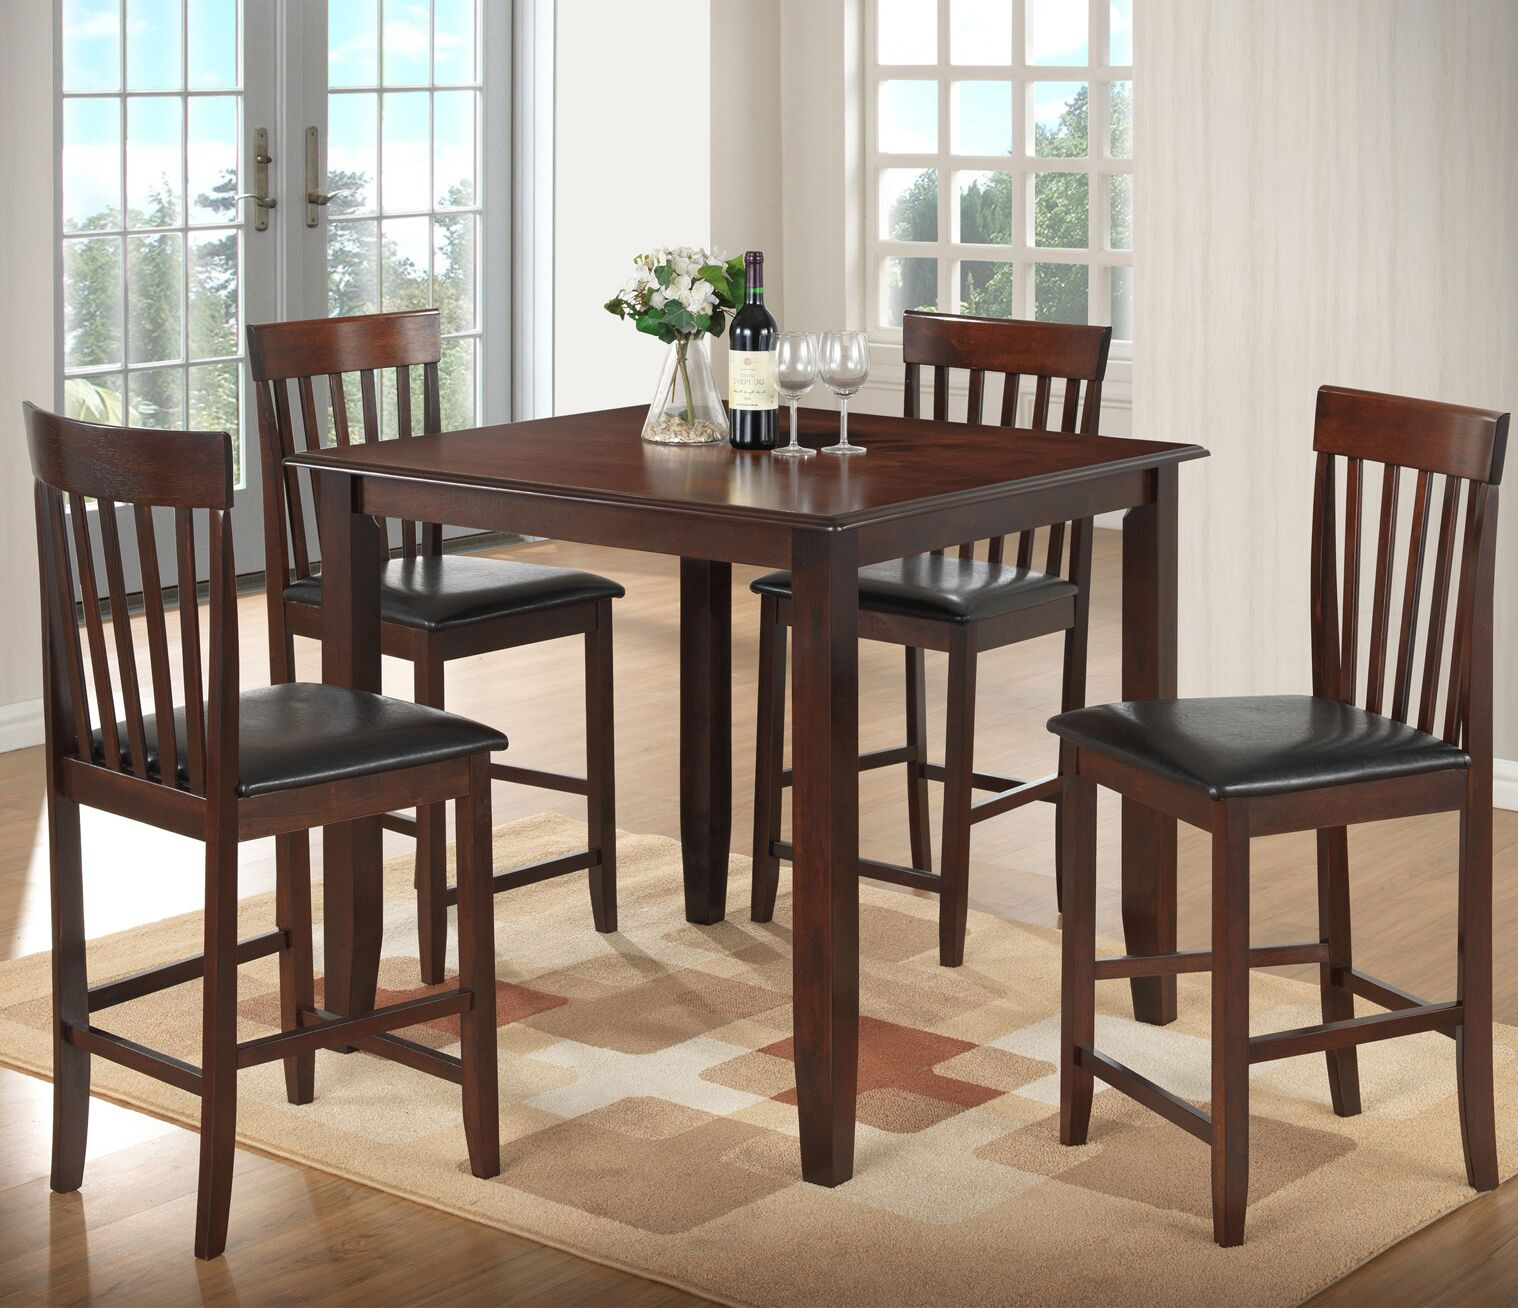 Dining Table Sets 5 Piece Counter Height Dining Set